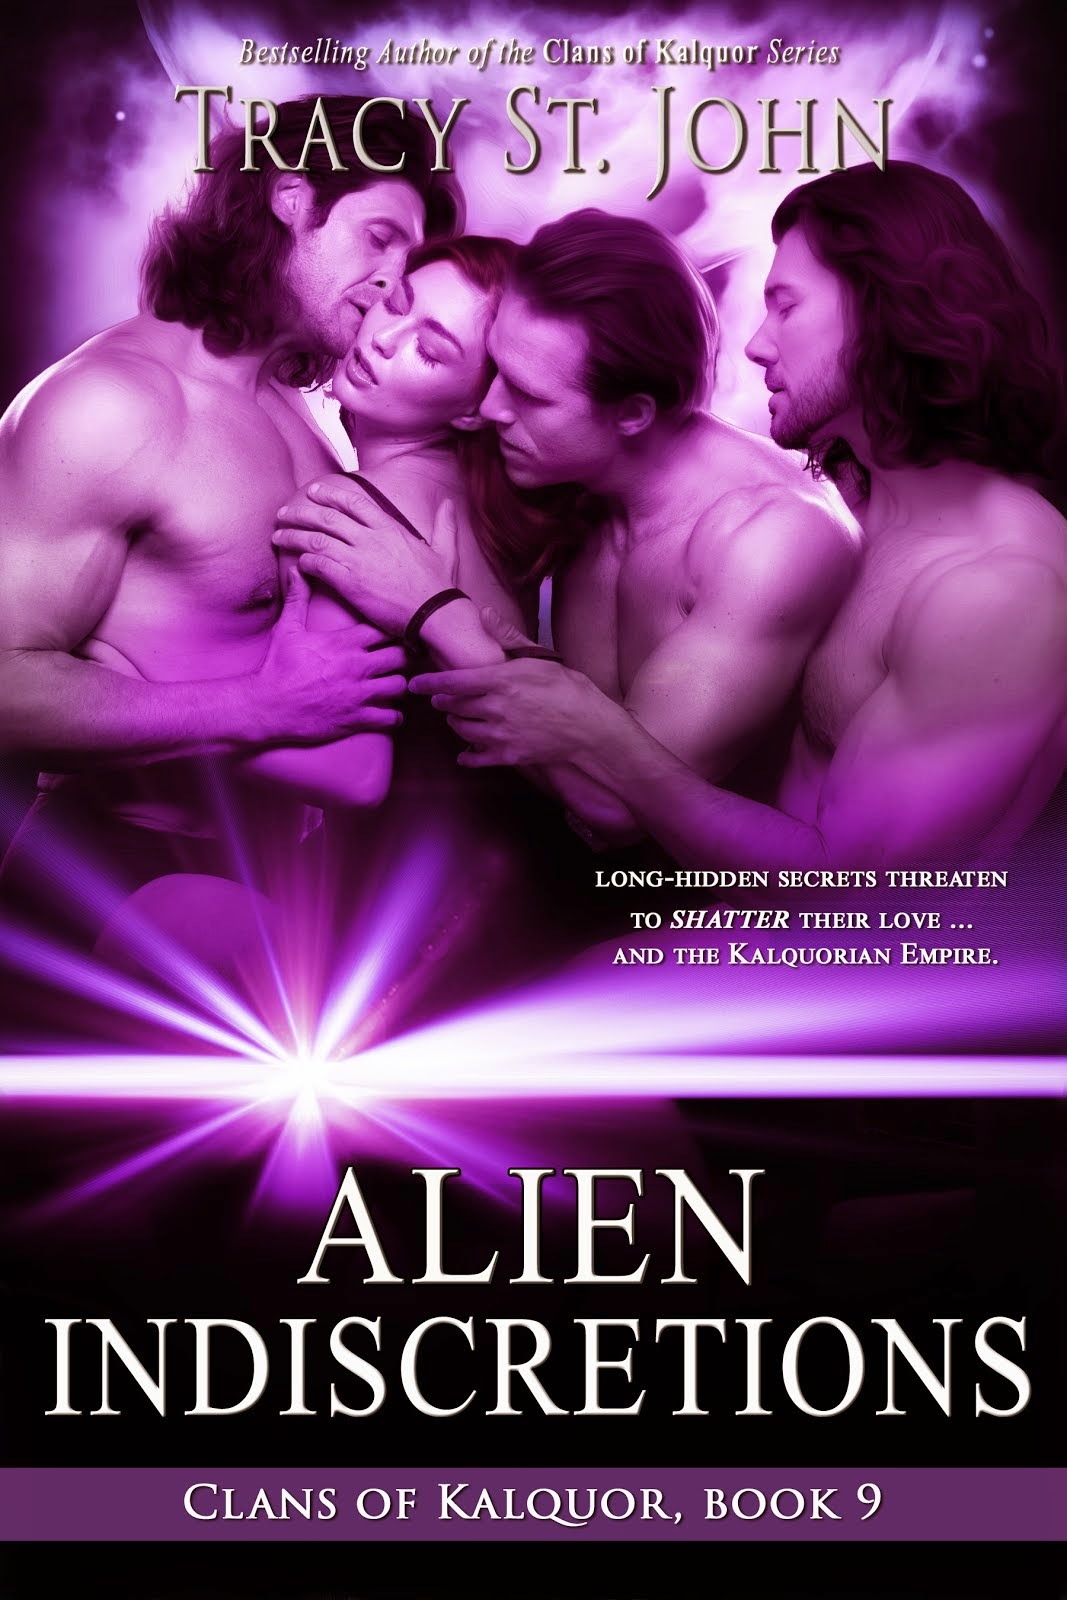 Alien Indiscretions (Clans of Kalquor 9)